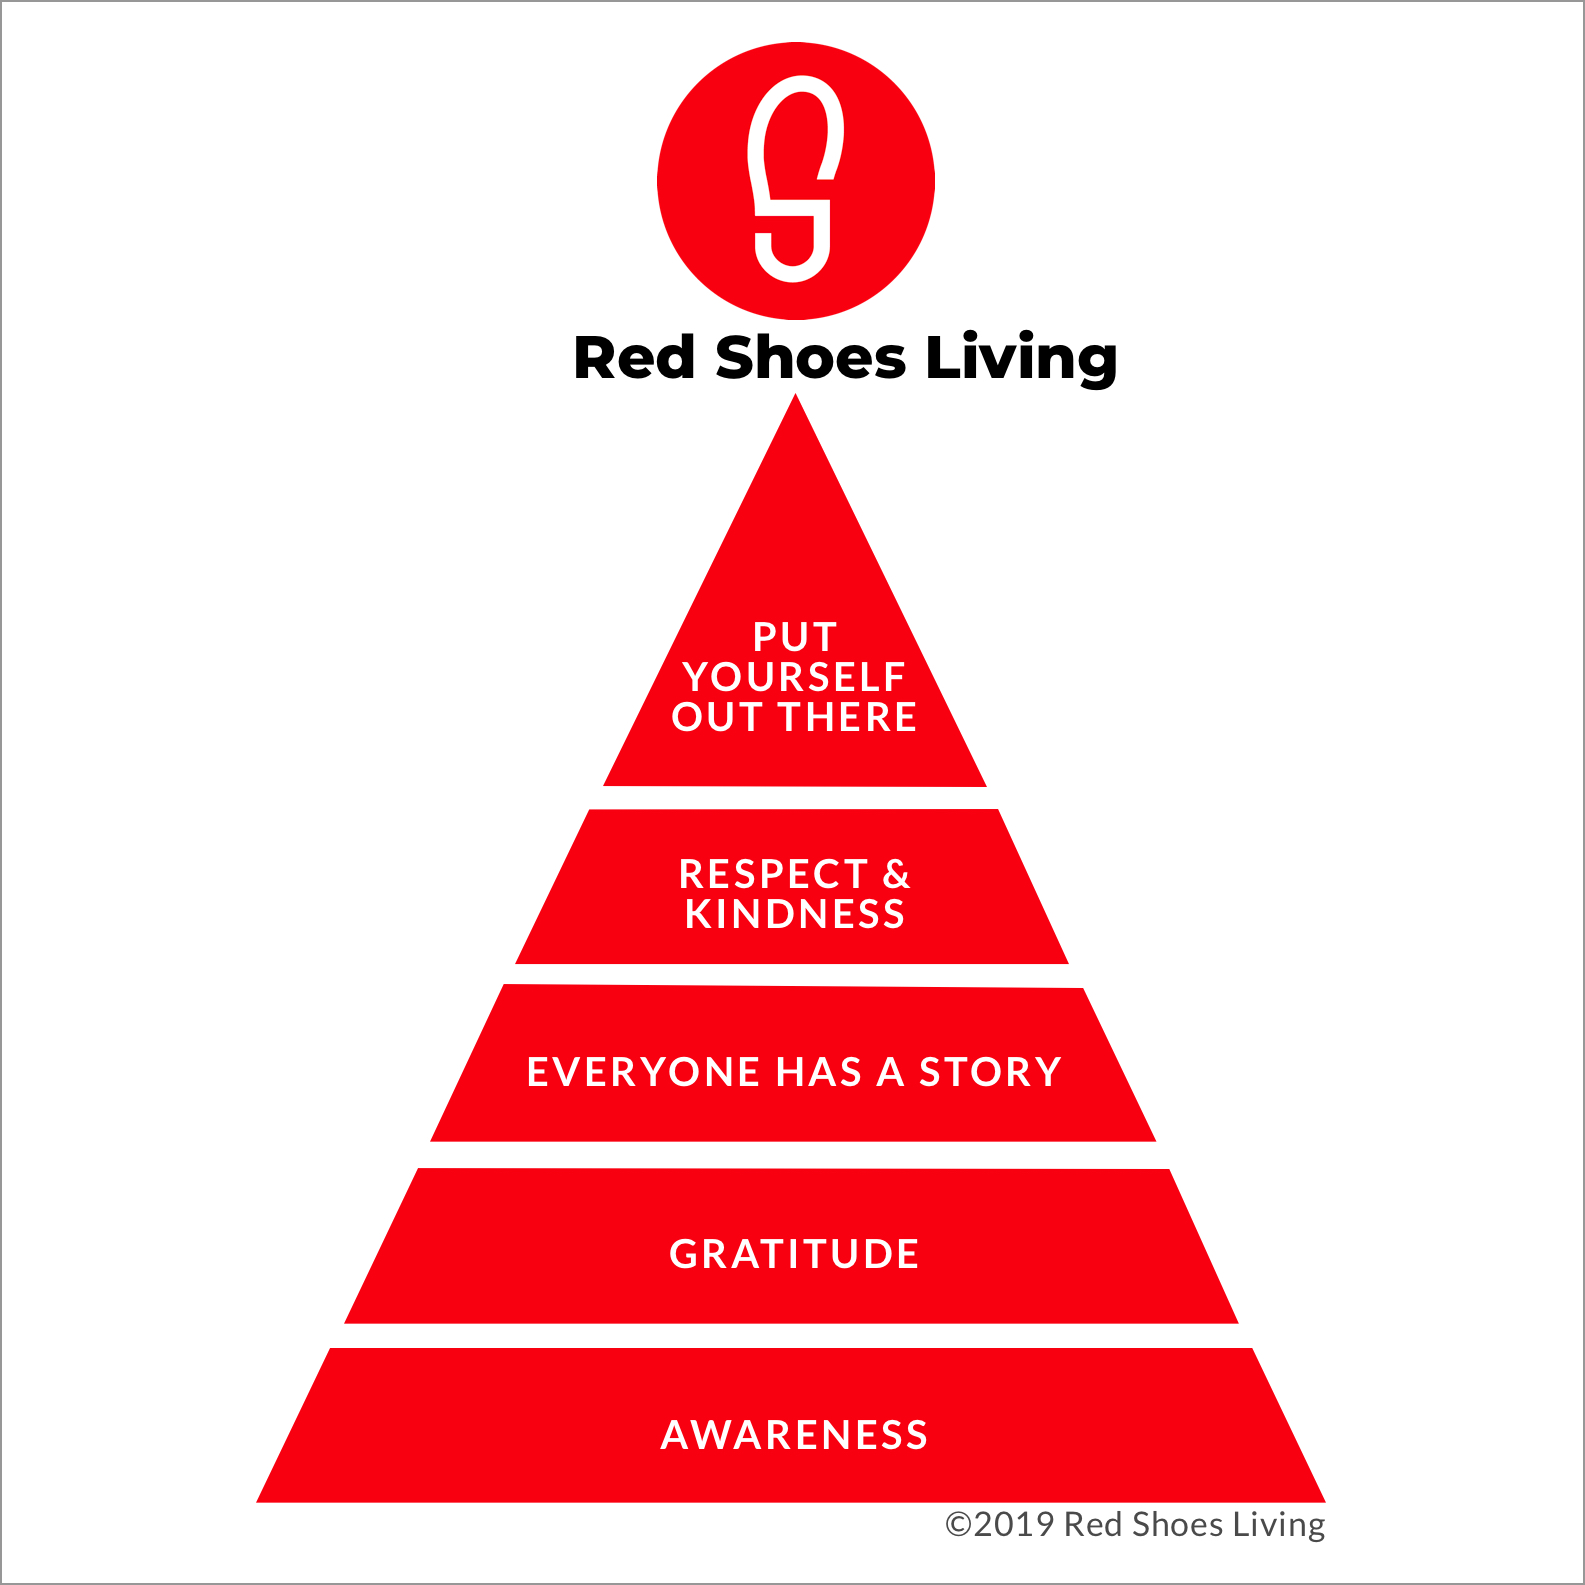 We operate based on    Lonnie Mayne's Red Shoes Living    philosophy, a simple but highly powerful way of leading both your life and career.